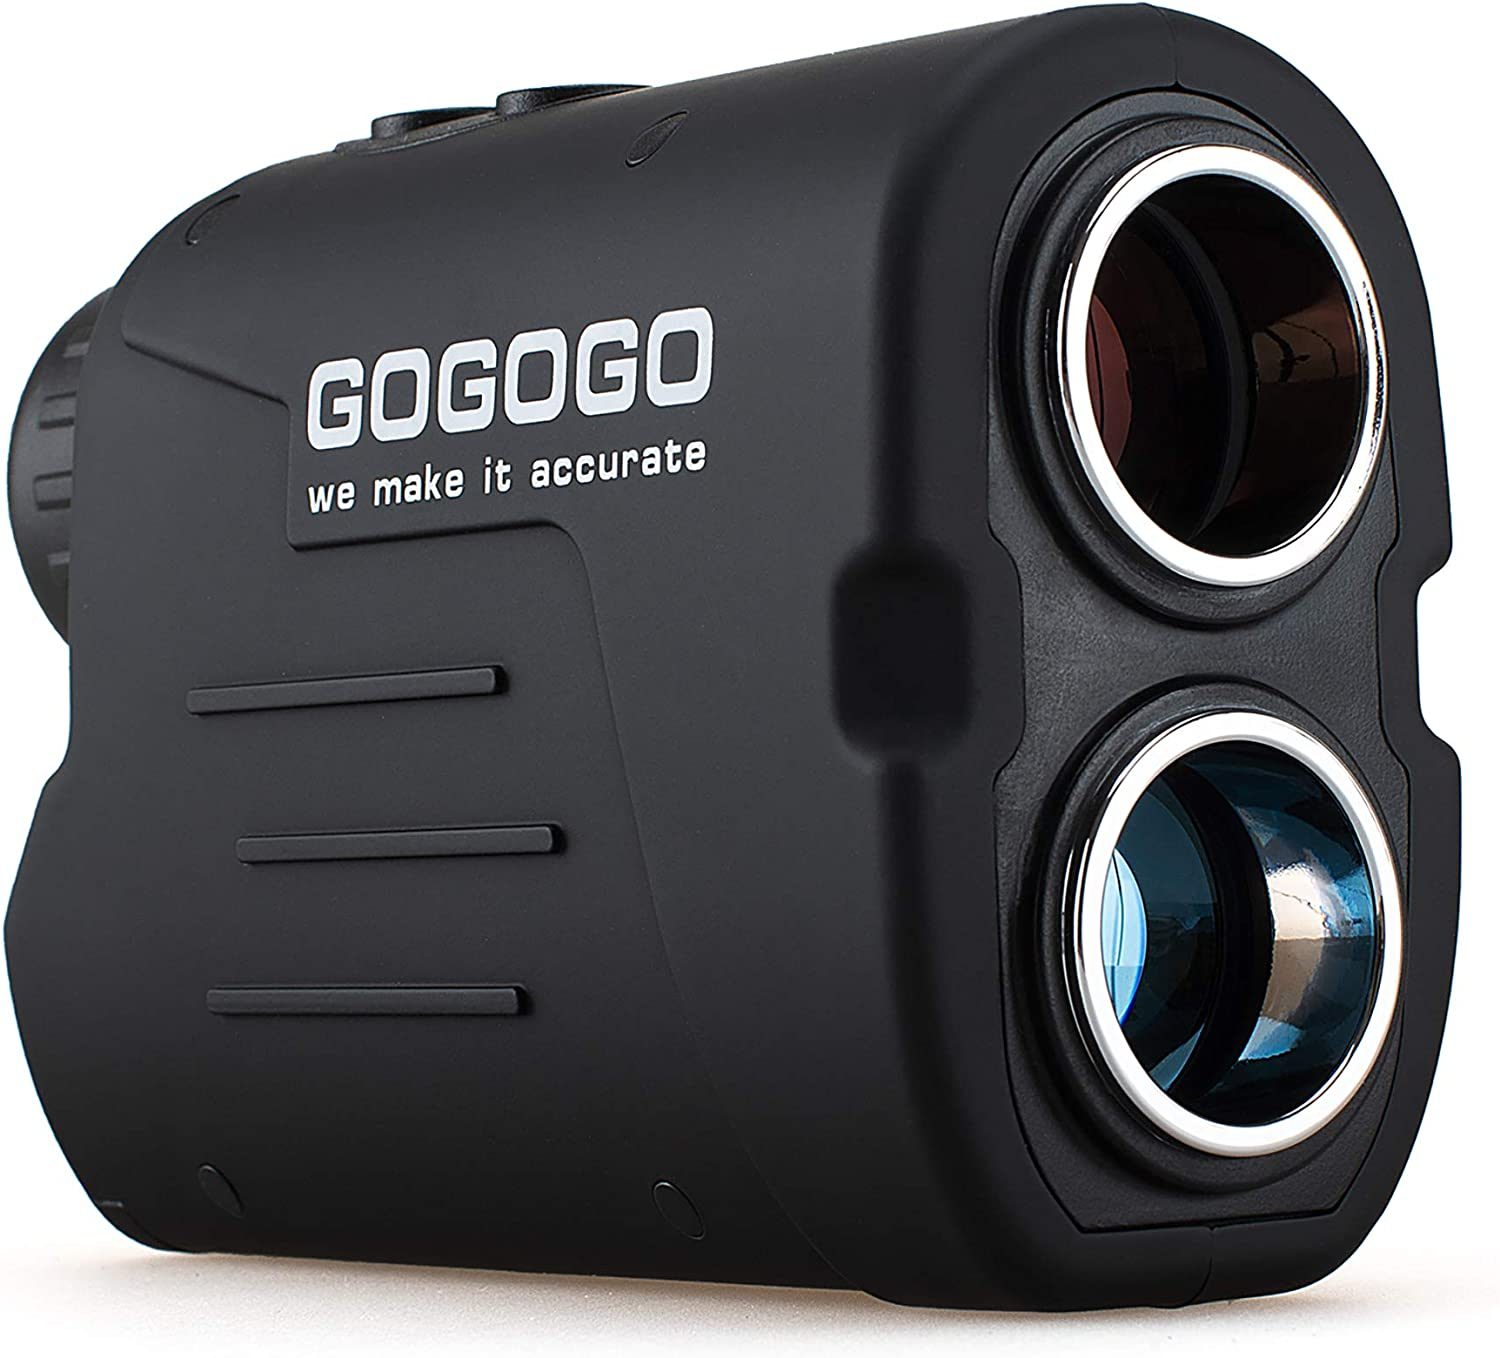 Gogogo Sport Laser Golf/Hunting Rangefinder, 6X Magnification Clear View 650/900 Yards Laser Range Finder, Accurate Scan, Slope Function, Pin-Seeker & Flag-Lock & Vibration, Easy-to-Use Range Finder : Sports & Outdoors